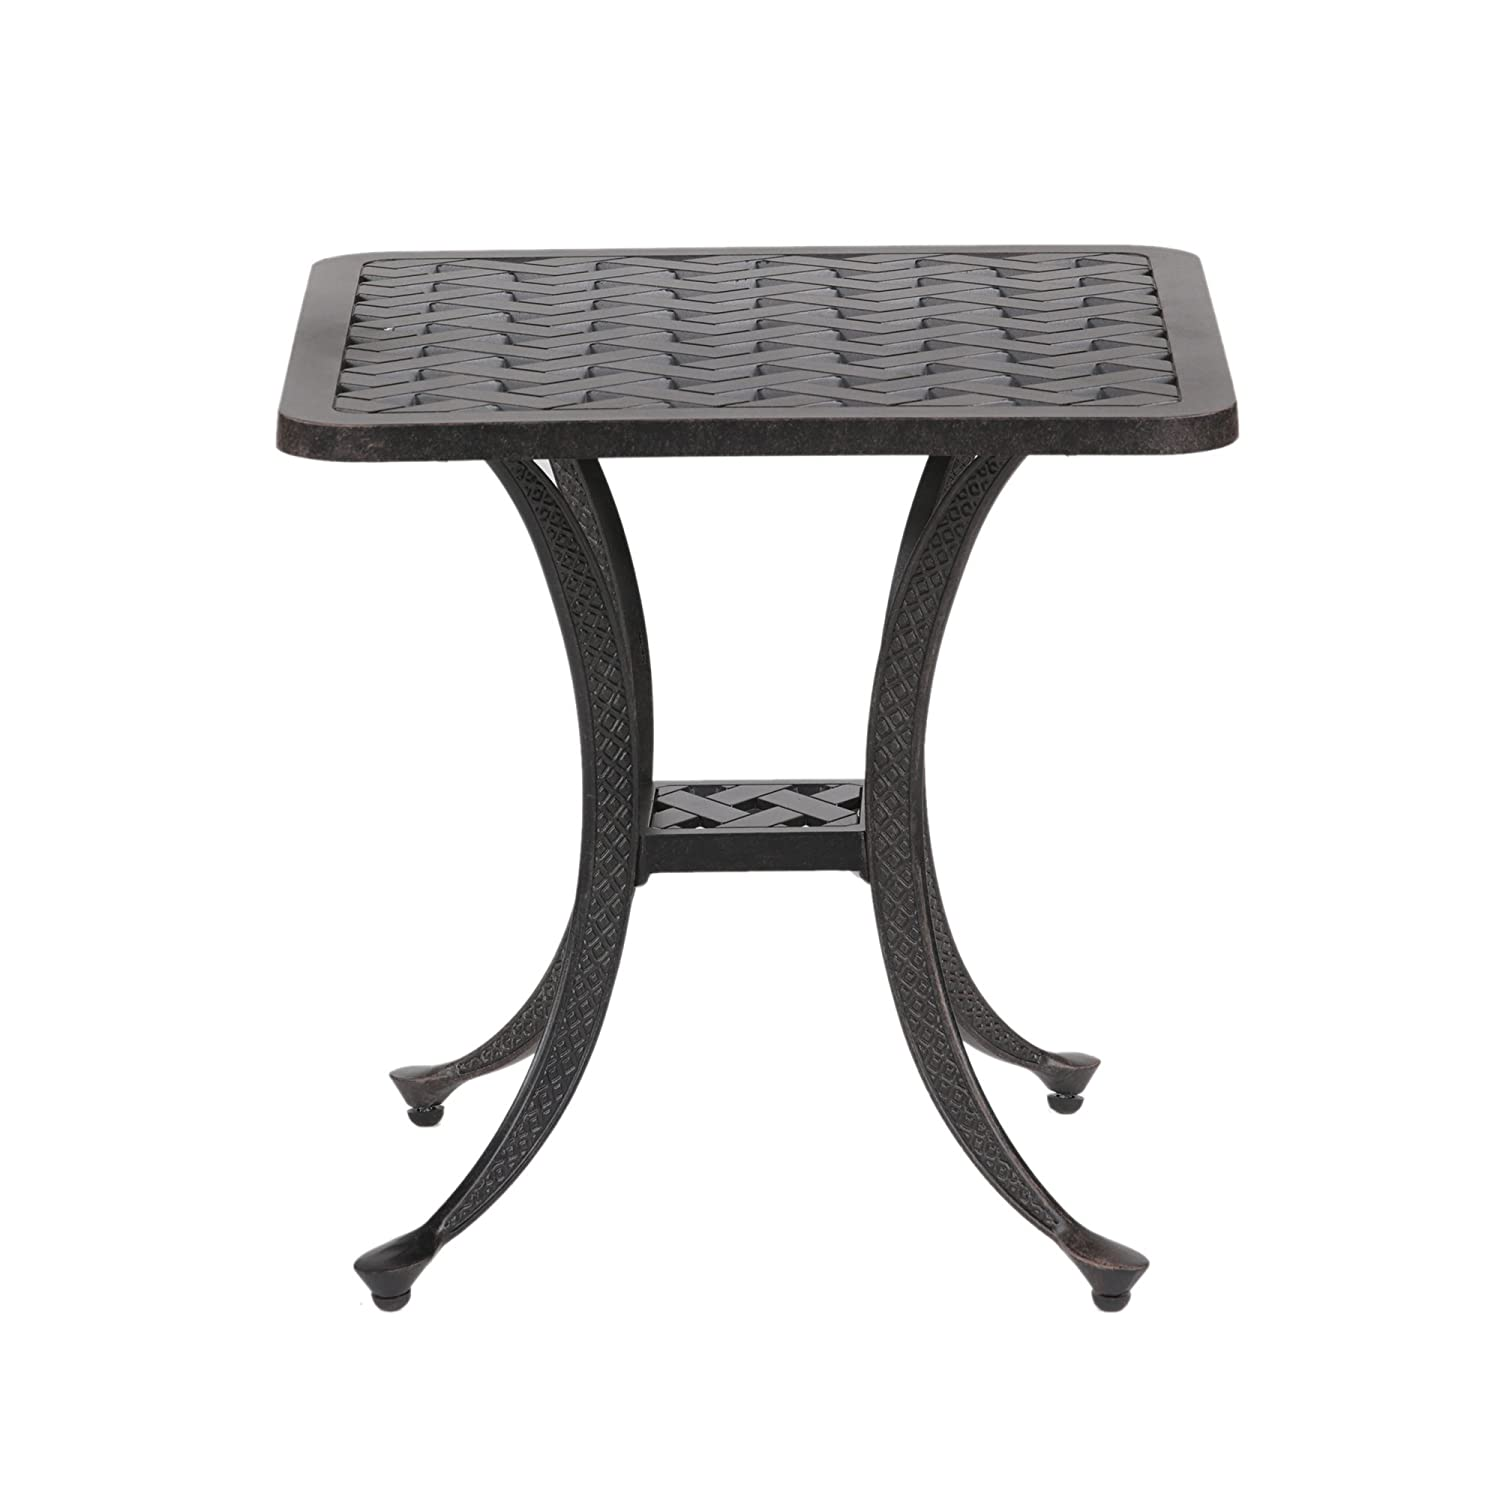 Best Patio Furniture Patio Sparta Standard Square Cast Aluminum Side Table//Outdoor End Table